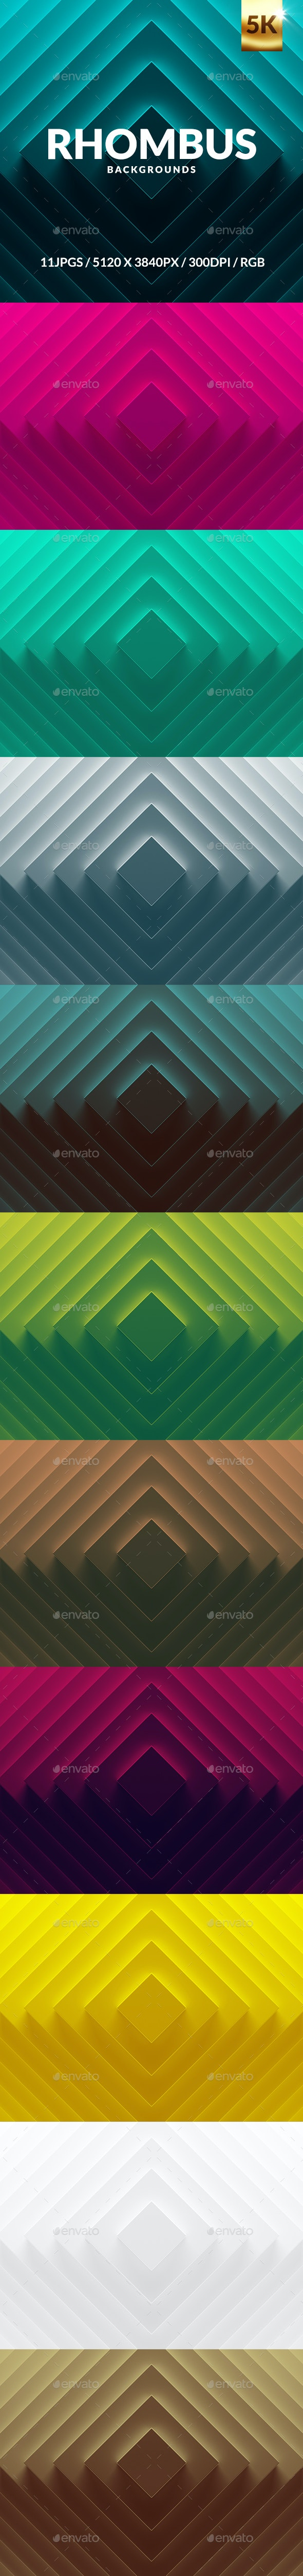 Rhombus Backgrounds - Backgrounds Graphics